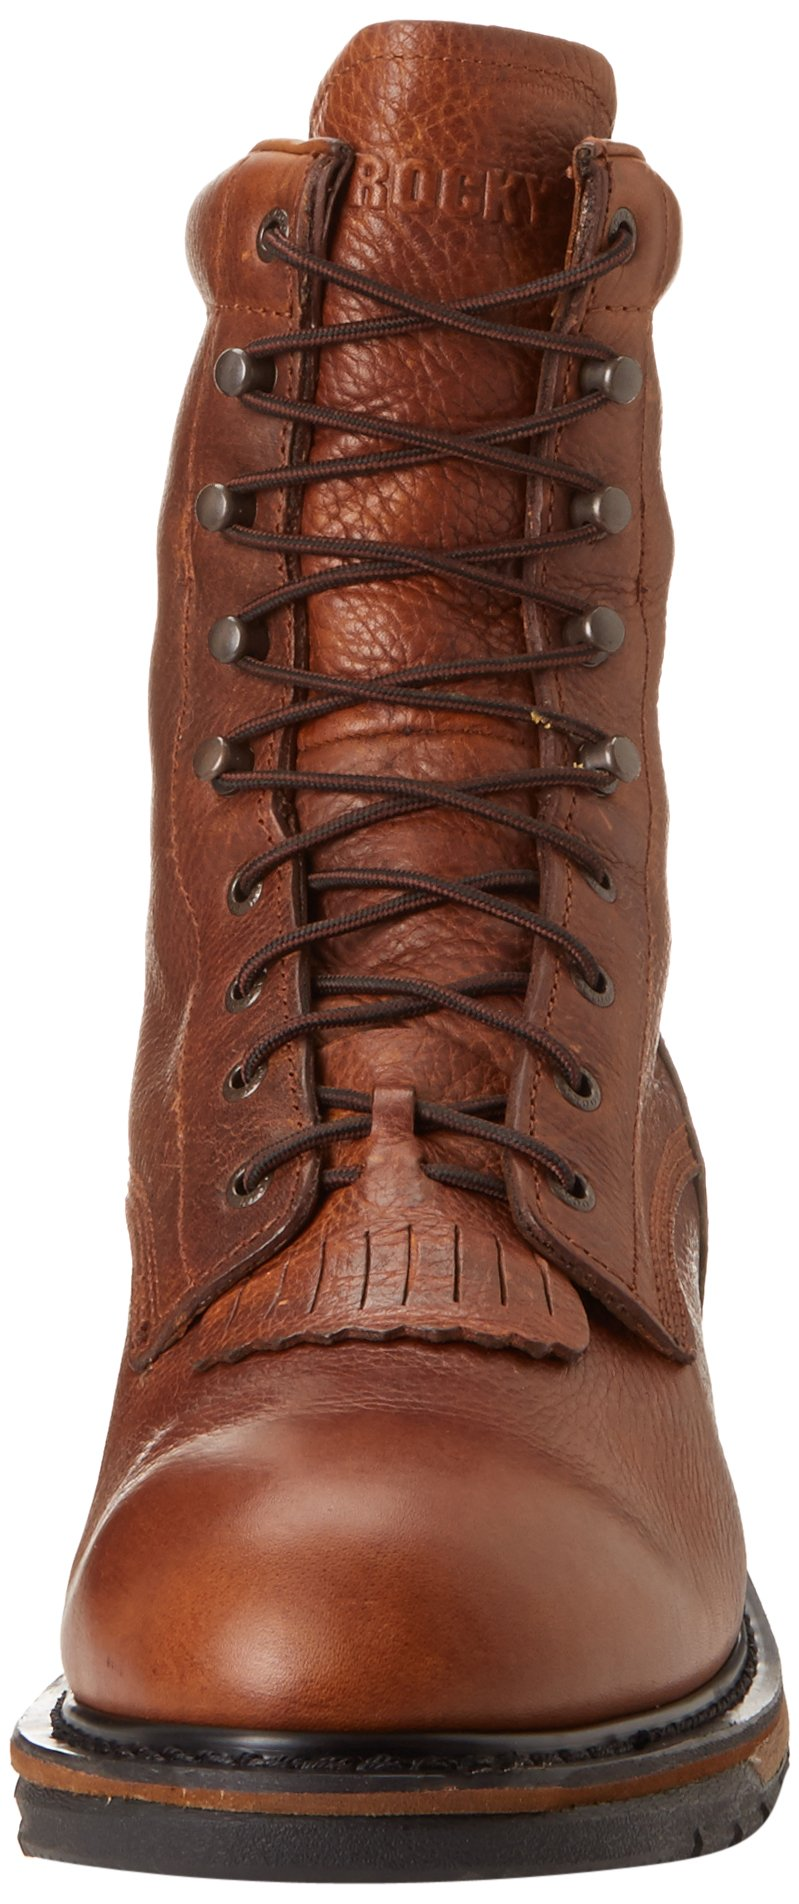 Men's Rocky 8'' EH Ride Lacer Work Boots BROWN 7.5 W by Rocky (Image #4)